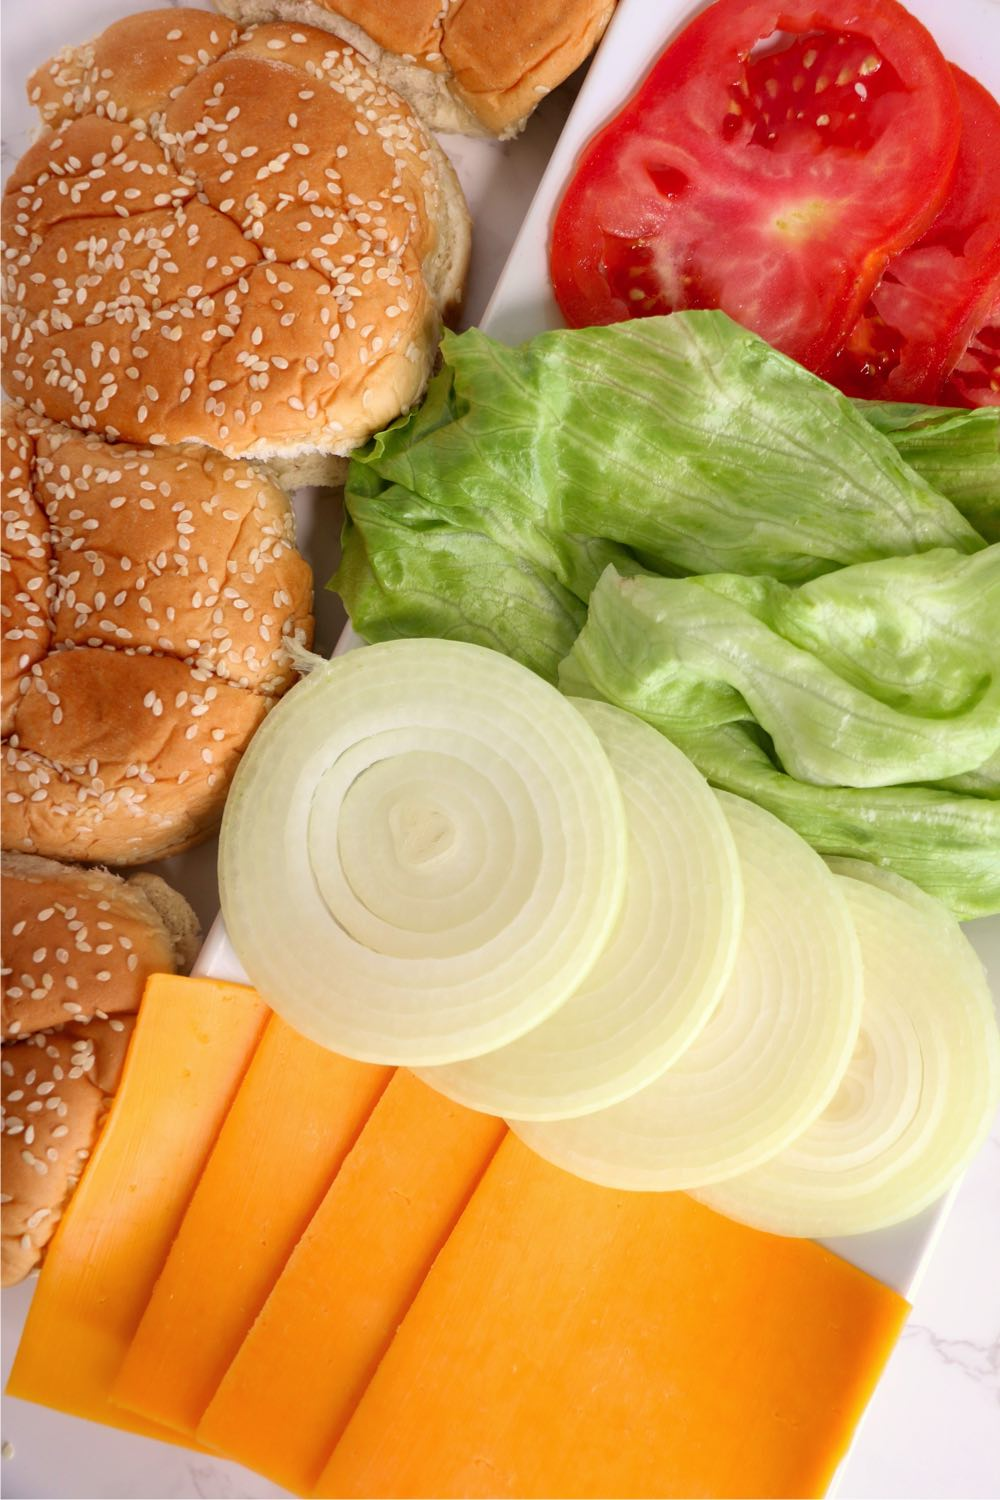 Buns and condiments for burgers